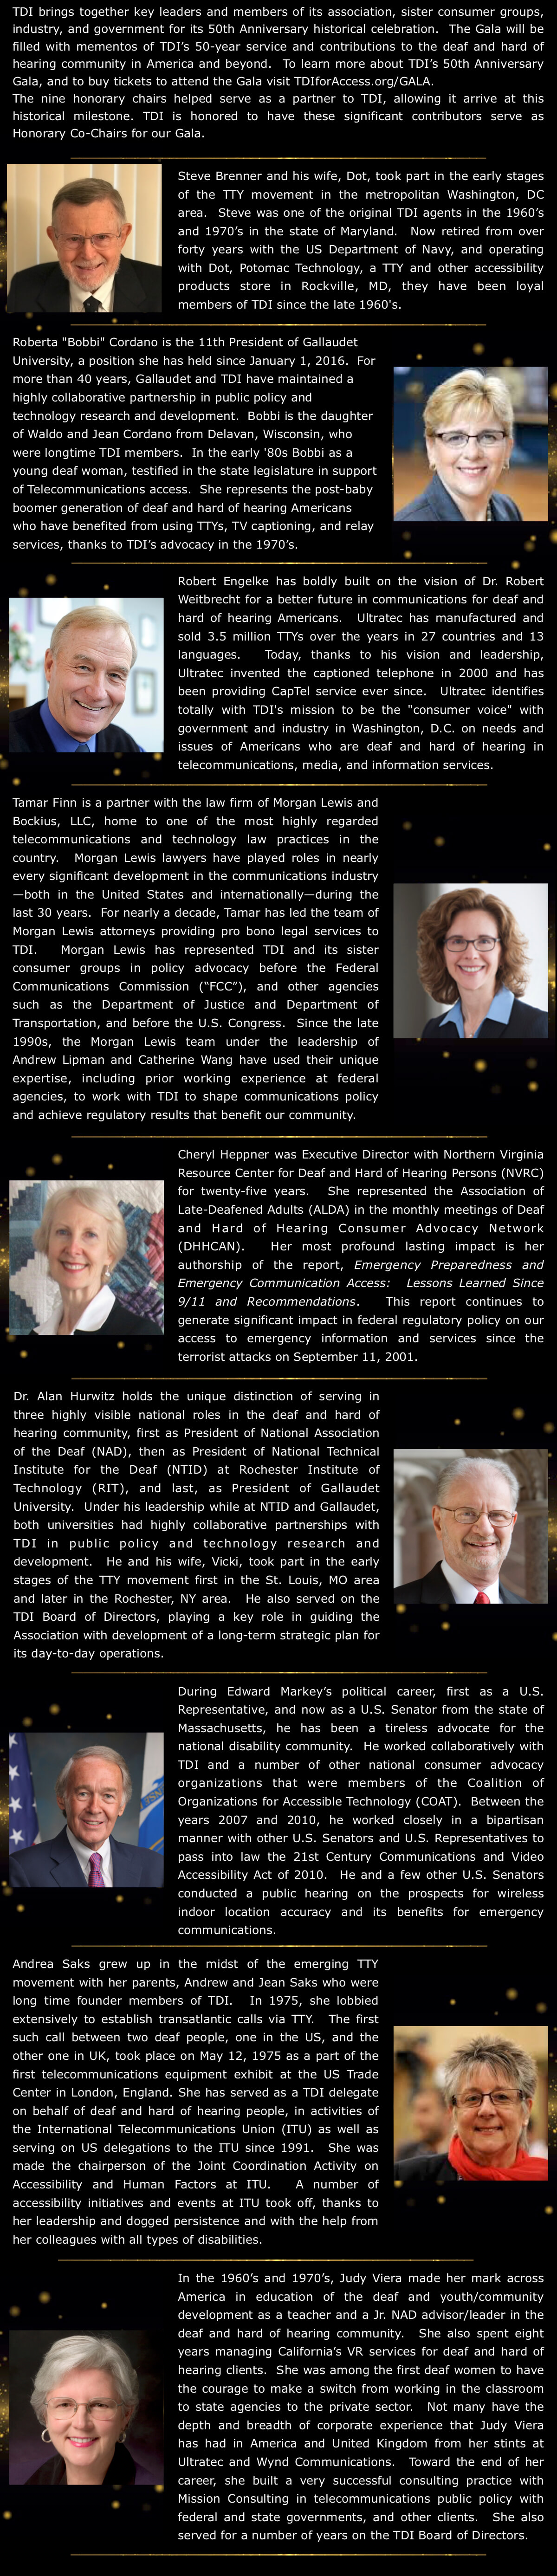 Introducing Nine Honorary Co-Chairs of TDI's 50th Anniversary Gala -- TDI brings together key leaders and members of its association, sister consumer groups, industry, and government for its 50th Anniversary historical celebration. The Gala will be filled with mementos of TDI's 50-year service and contributions to the deaf and hard of hearing community in America and beyond. To learn more about TDI's 50th Anniversary Gala, and to buy tickets to attend the Gala visit TDIforAccess.org/GALA. 